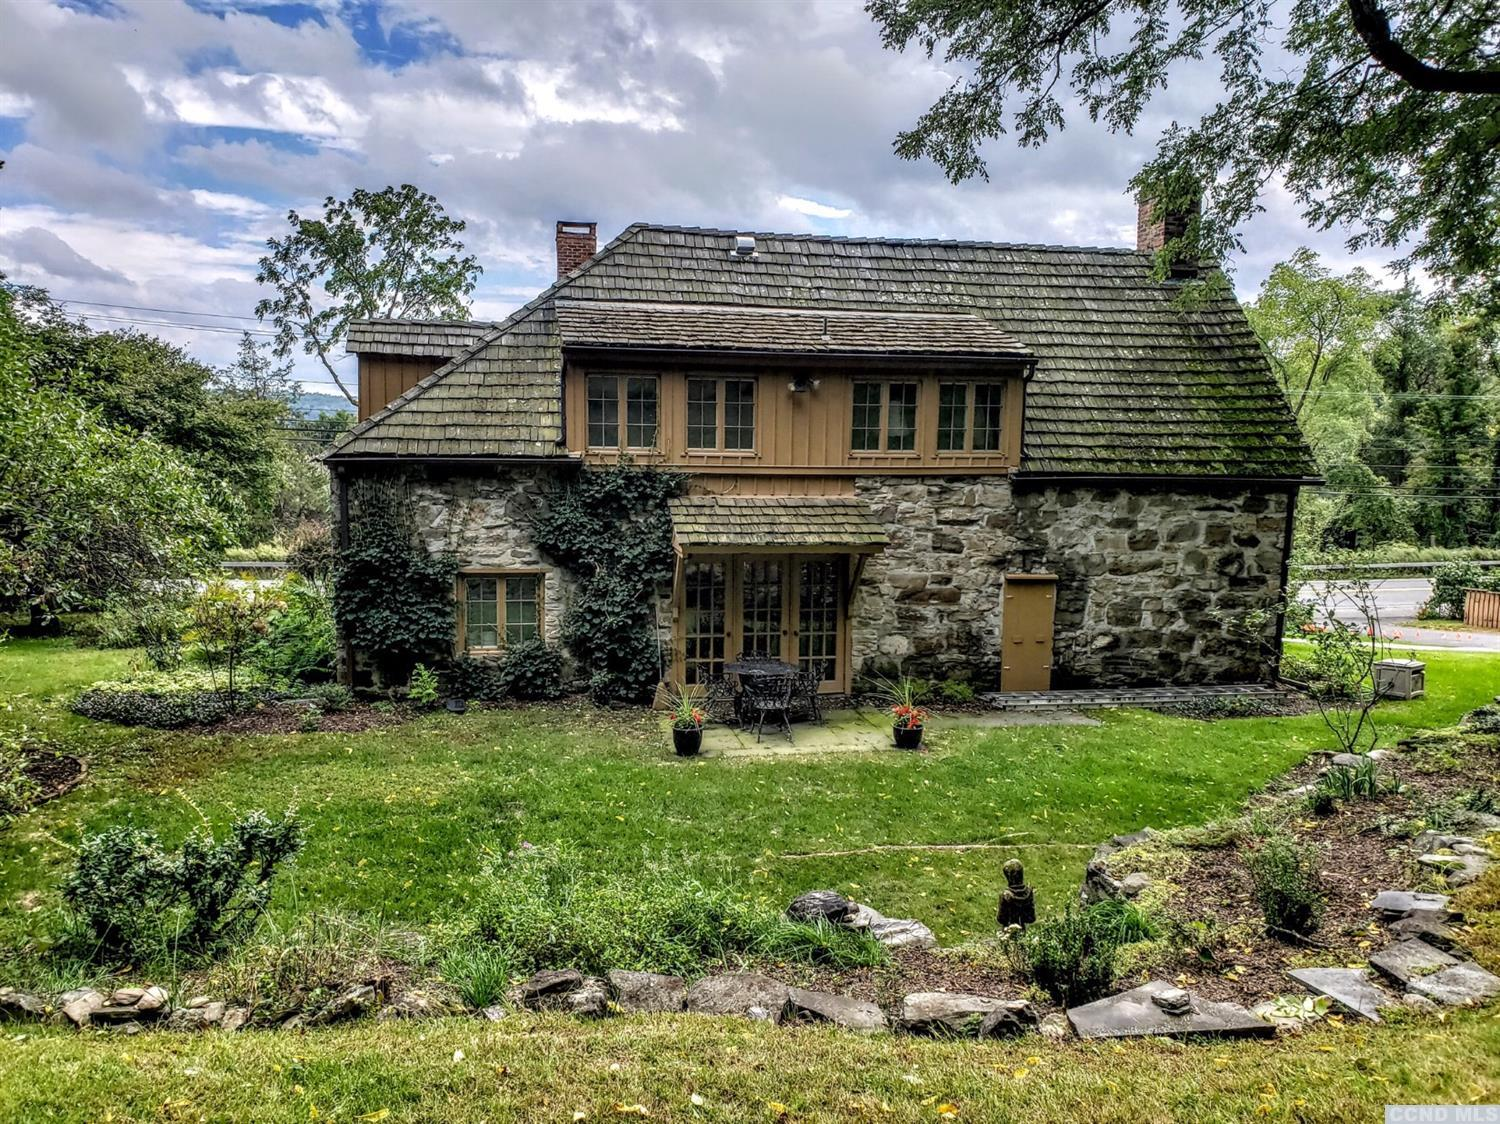 <i><b>This is one of Columbia County's oldest stone houses located just outside the city limit of Hudson on Rte. 9G. If you want to be minutes to great&nbsp;</b></i><i style=font-size: 10pt;><b>restaurants, entertainment, shopping, galleries, Skywalk, Olana, Hudson River cruises, marinas,&nbsp;</b><span 13.3333px;=><b>Amtrak S</b></span><b>tation, hiking, biking, skiing Hunter &amp; Windham Mtns, th</b></i><i style=font-size: 10pt;><b>en this 1700's stonehouse with 4 acres is perfect for you!&nbsp;</b></i><i style=font-size: 10pt;><b>Inside you will love the wide board oak &amp; pine floors, beehive chimney, cathedral ceiling, exposed interior stone walls, chestnut beams, 2 wood burning fireplaces,&nbsp;</b></i><i style=font-size: 10pt;><b>